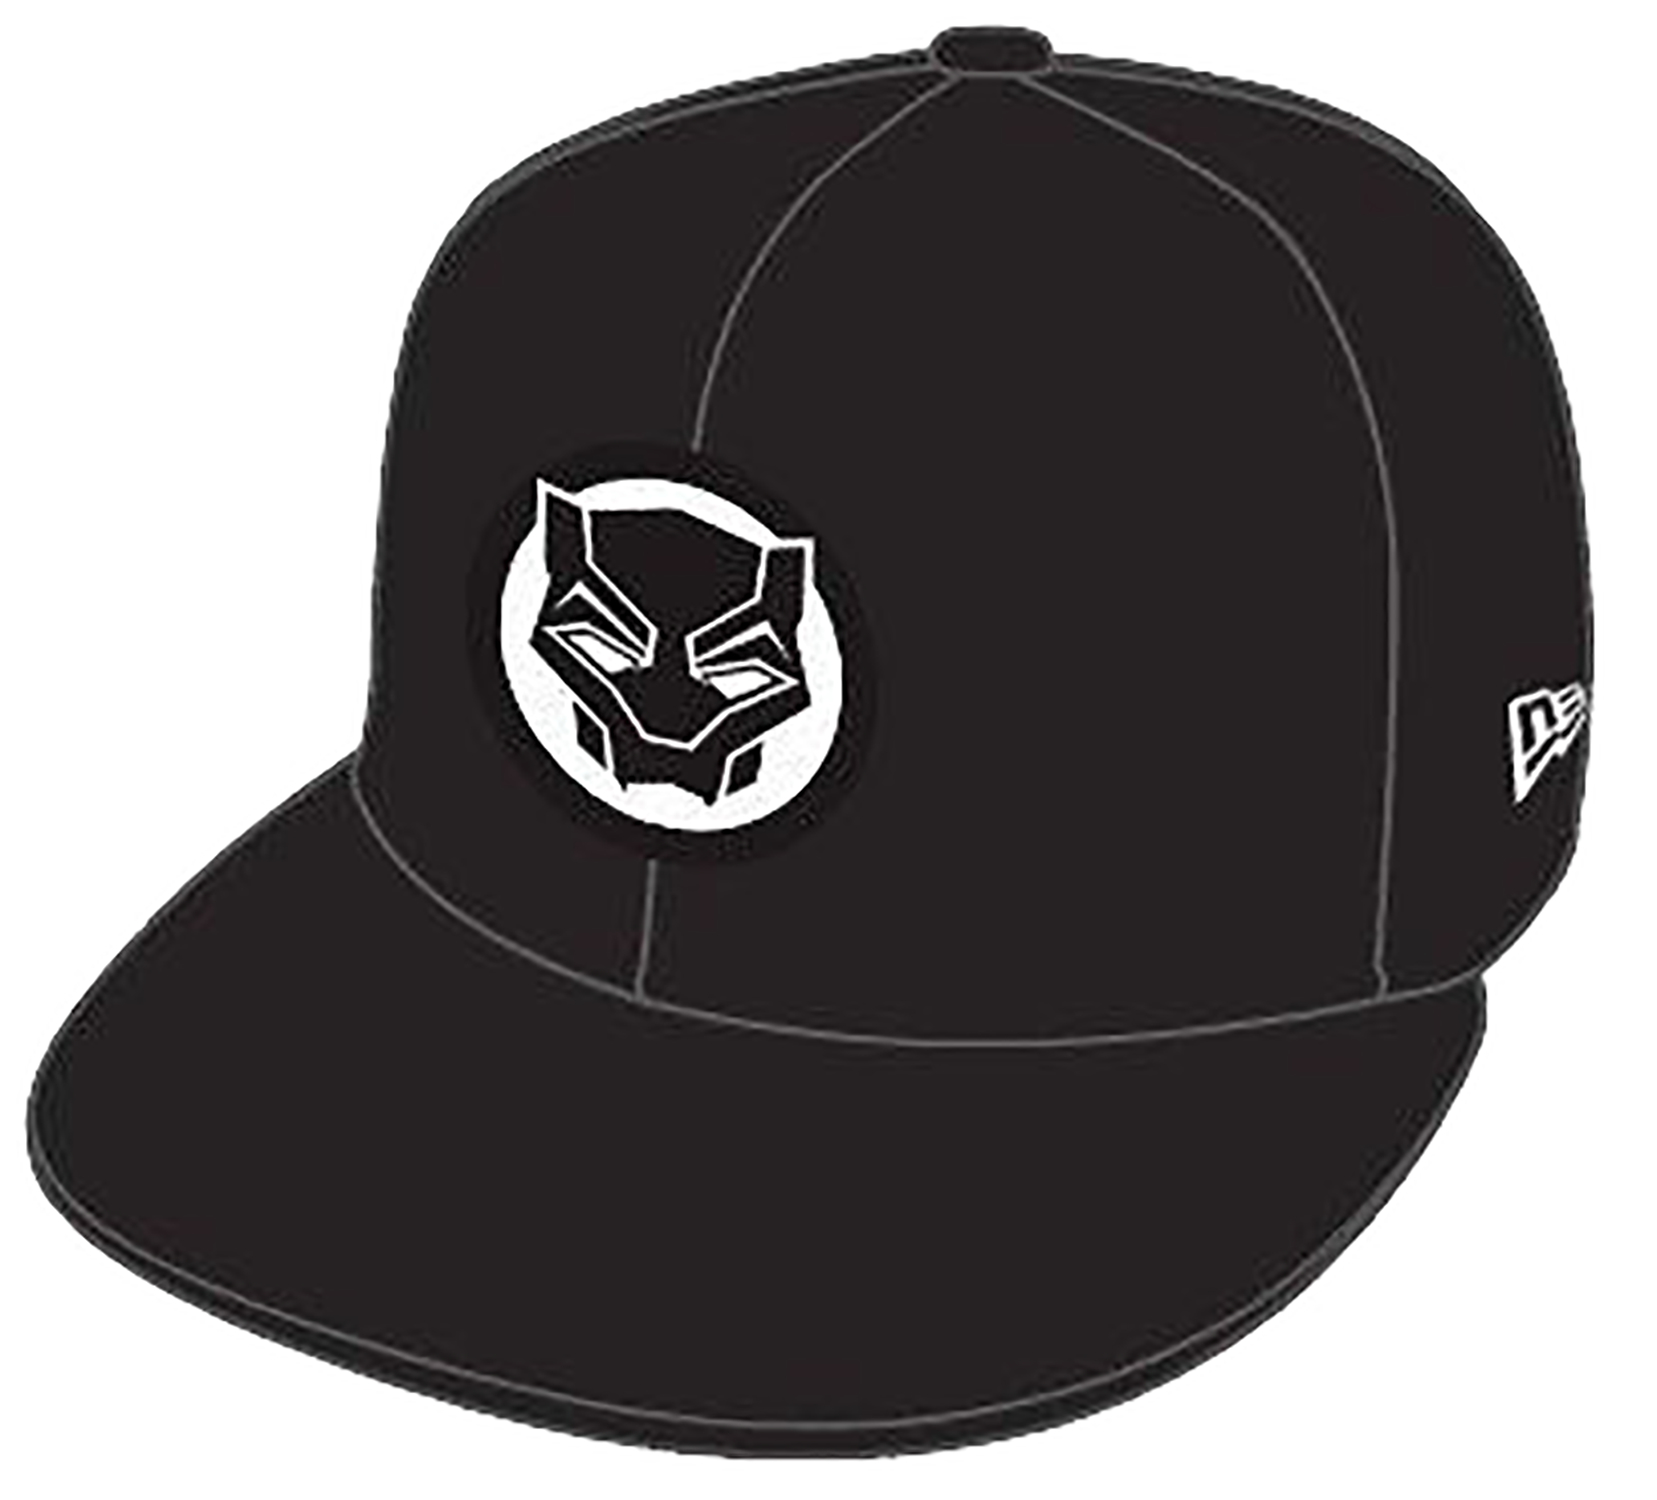 41451465d clearance black panther cap c7899 2d522